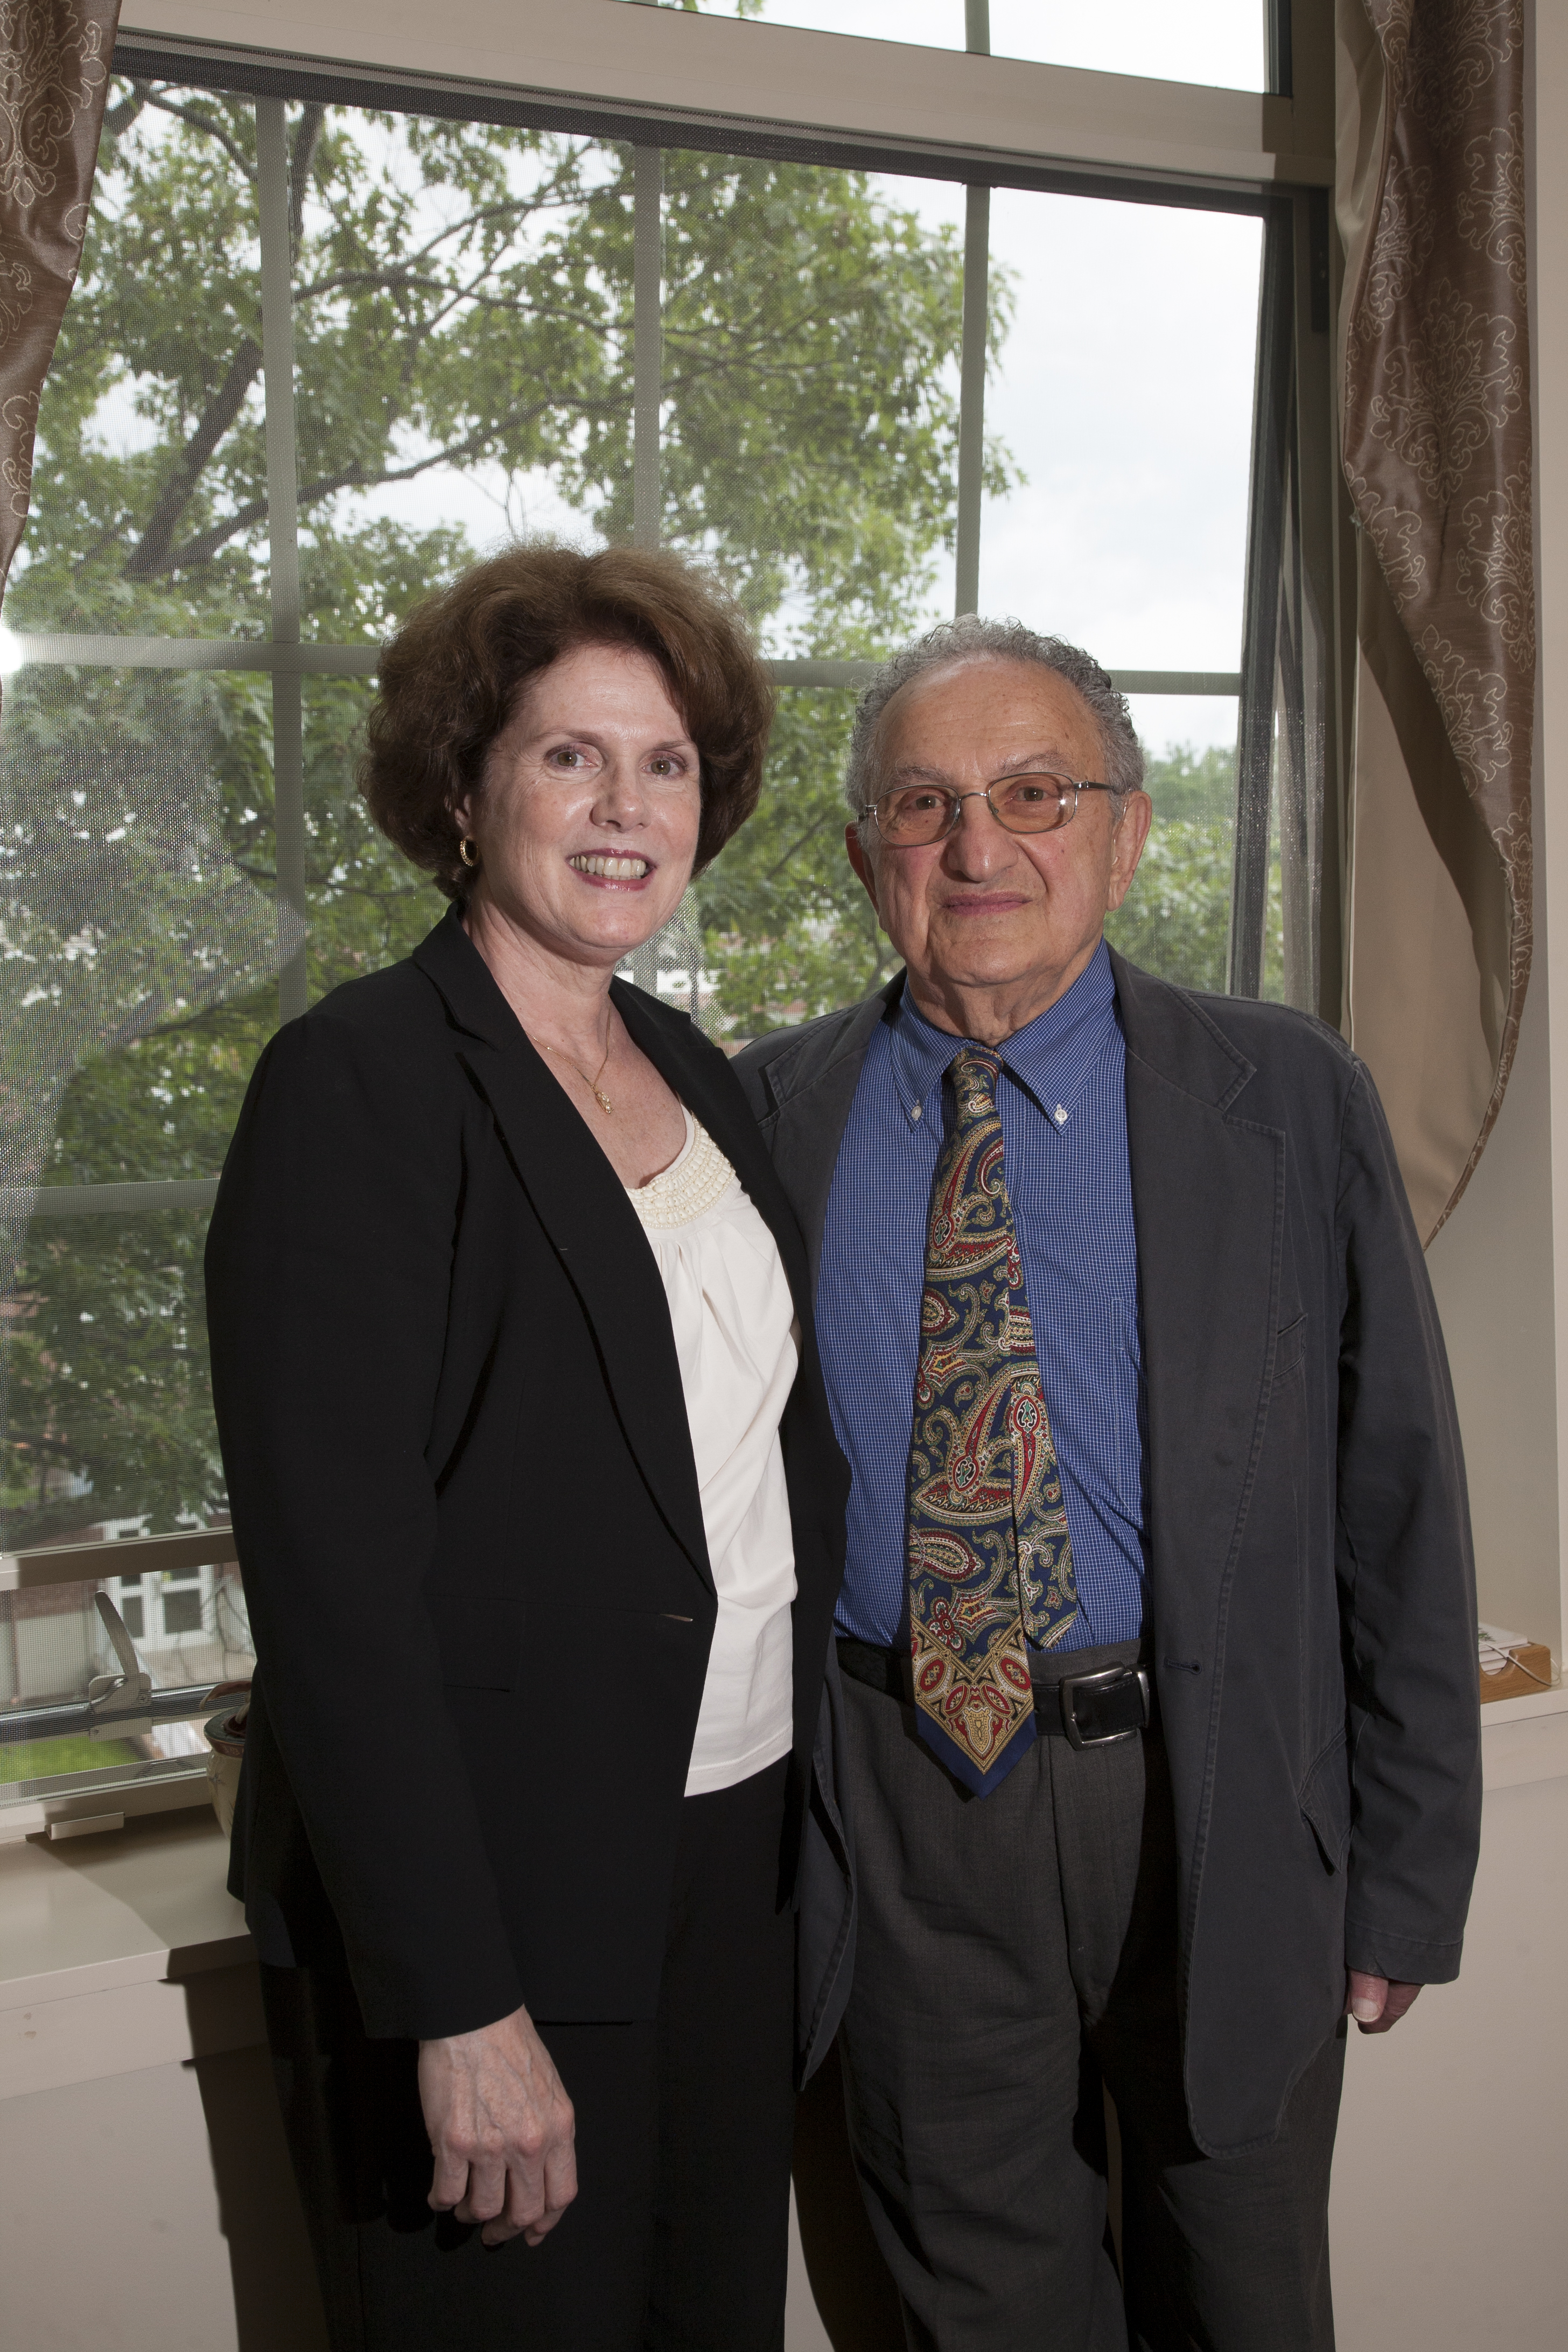 The Dr. Maureen and Edward Shamgochian Endowed Scholarship